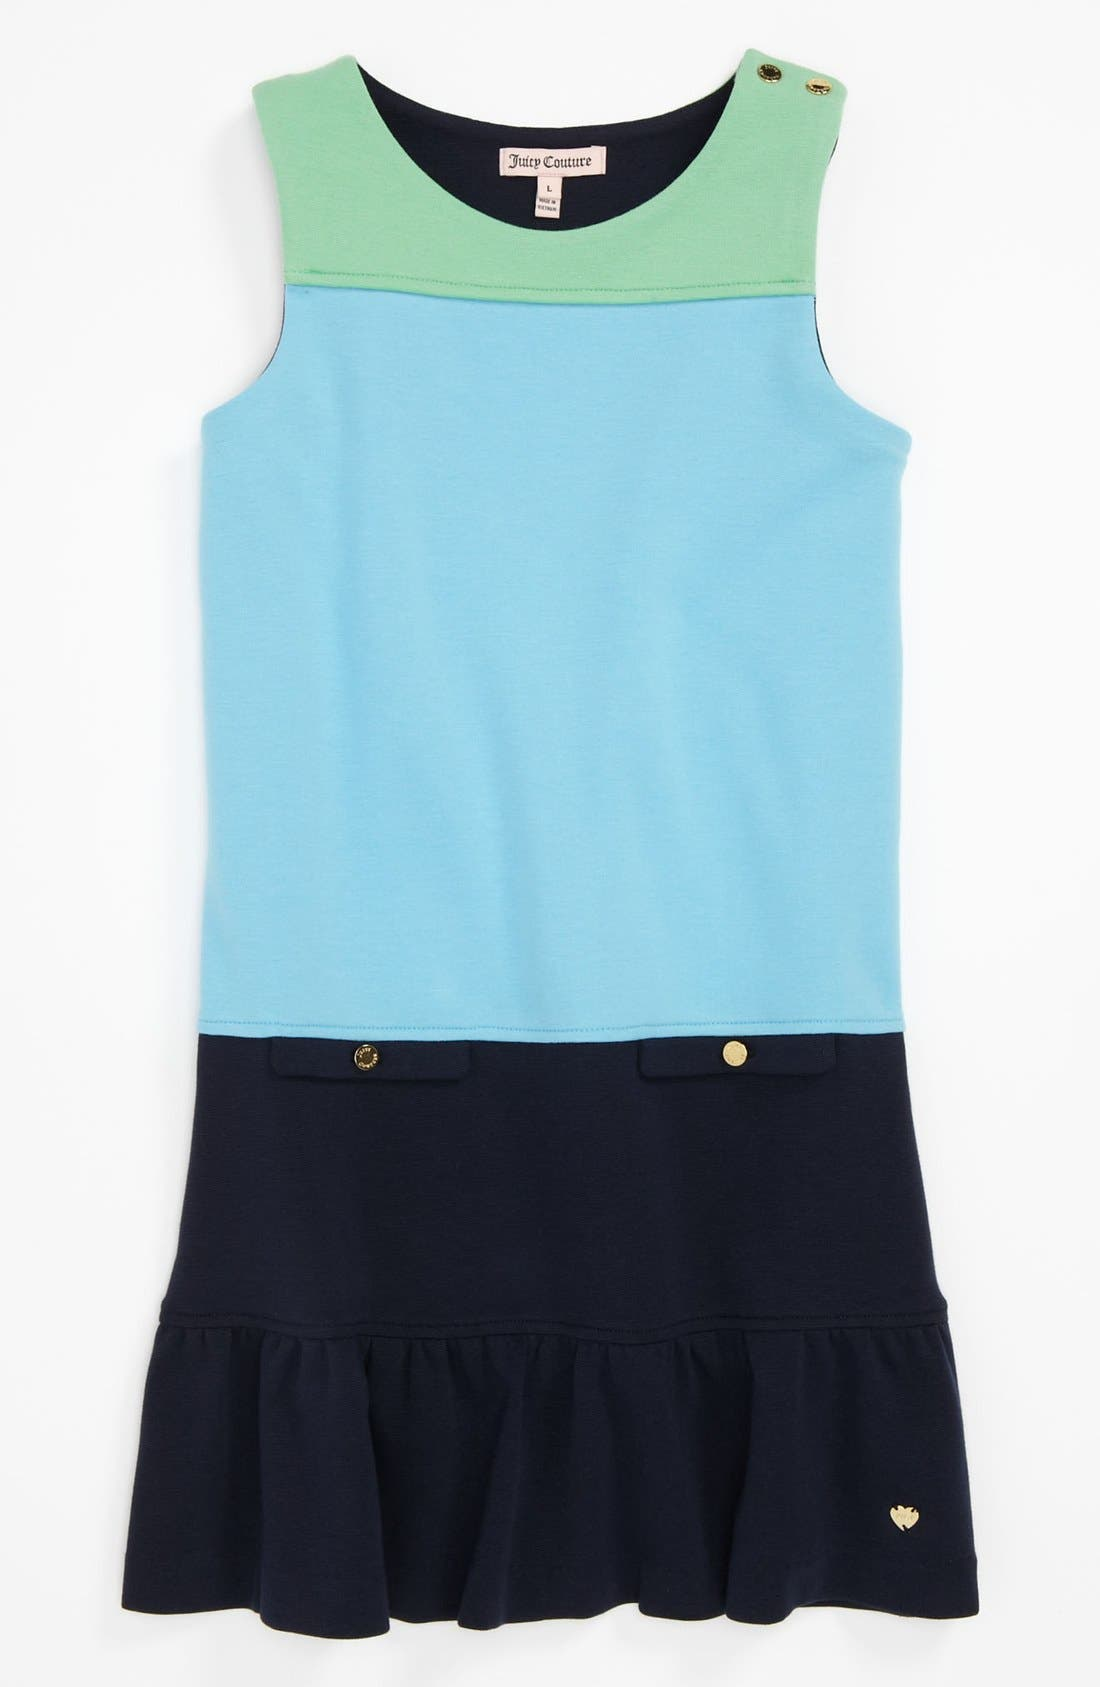 Alternate Image 1 Selected - Juicy Couture Colorblock Ponte Knit Dress (Big Girls)